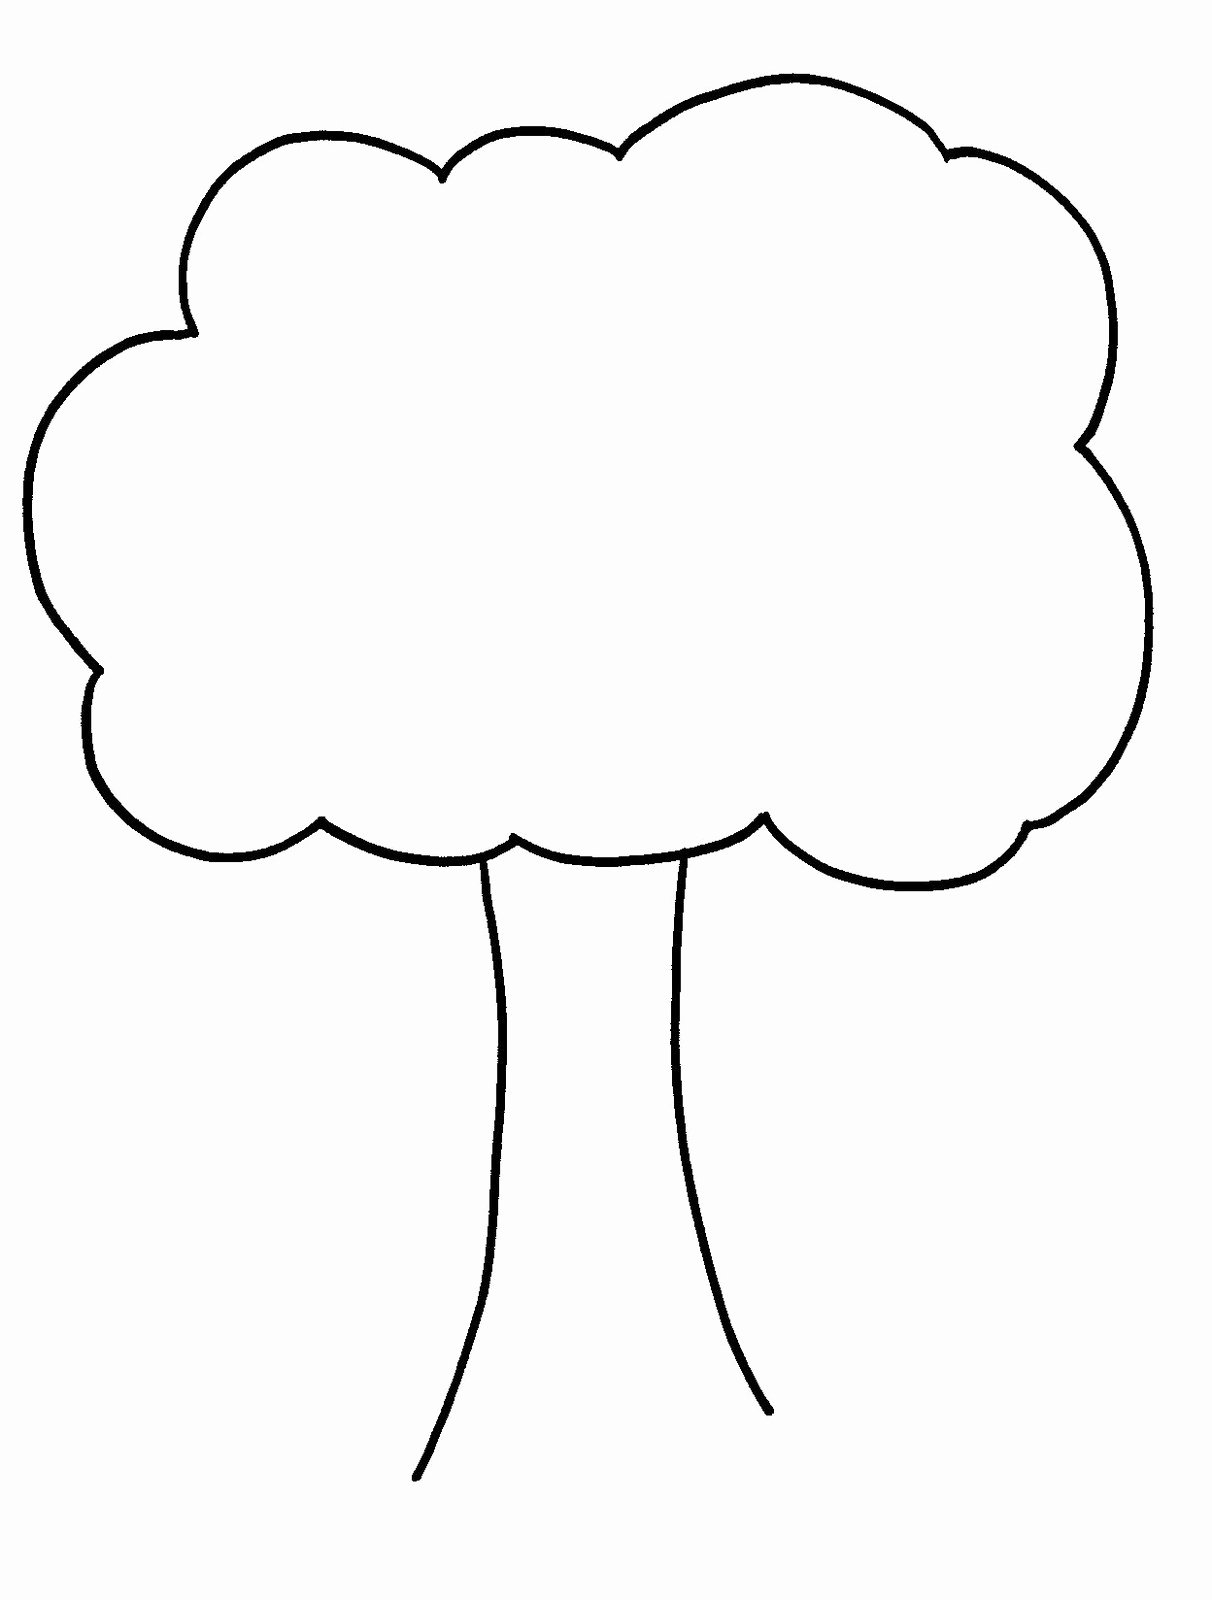 Template for Family Tree Lovely Bare Tree Template Cliparts